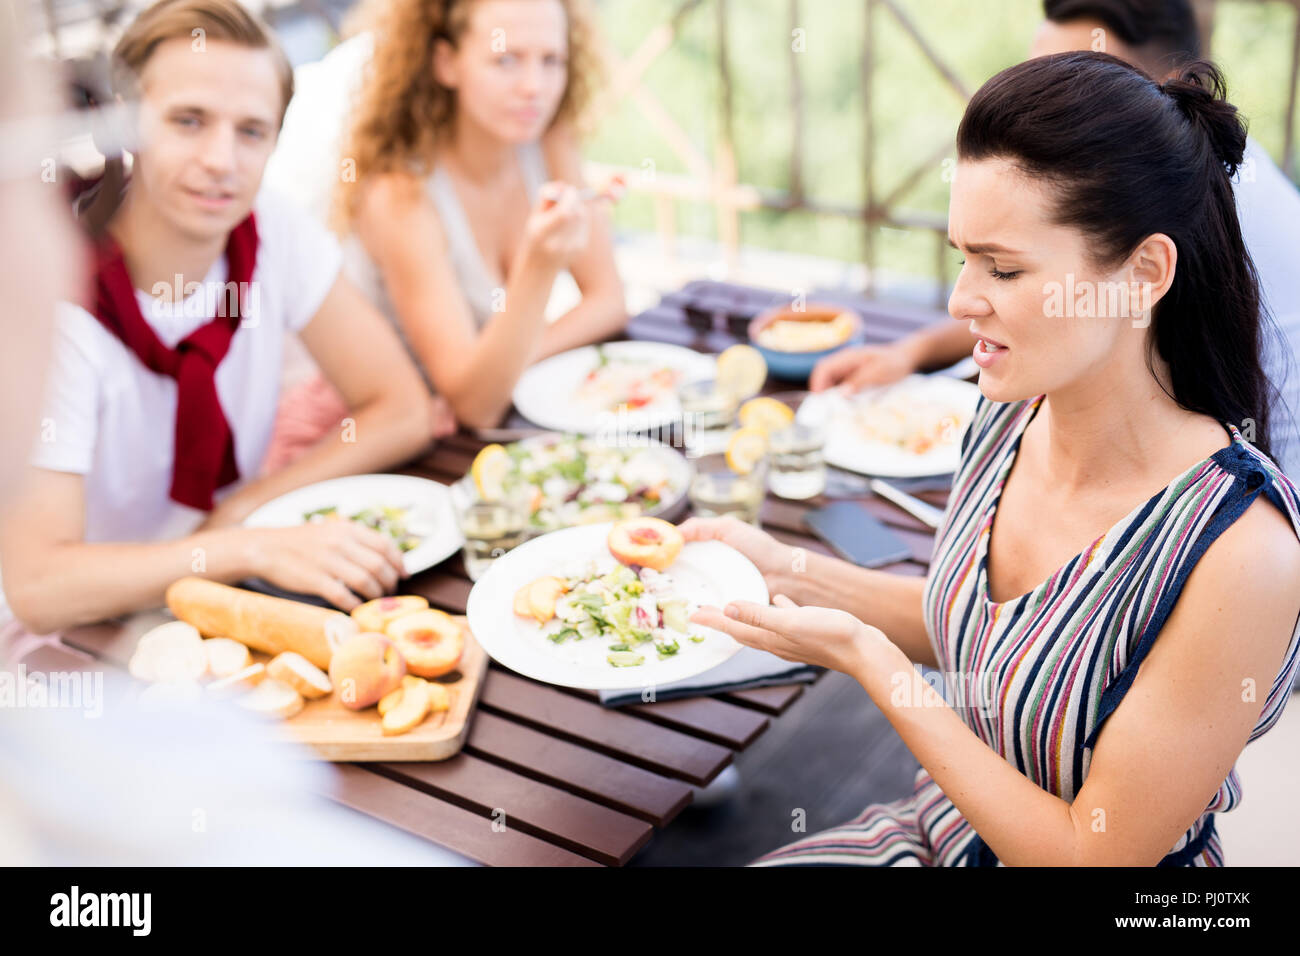 Guests Complaining in Cafe - Stock Image